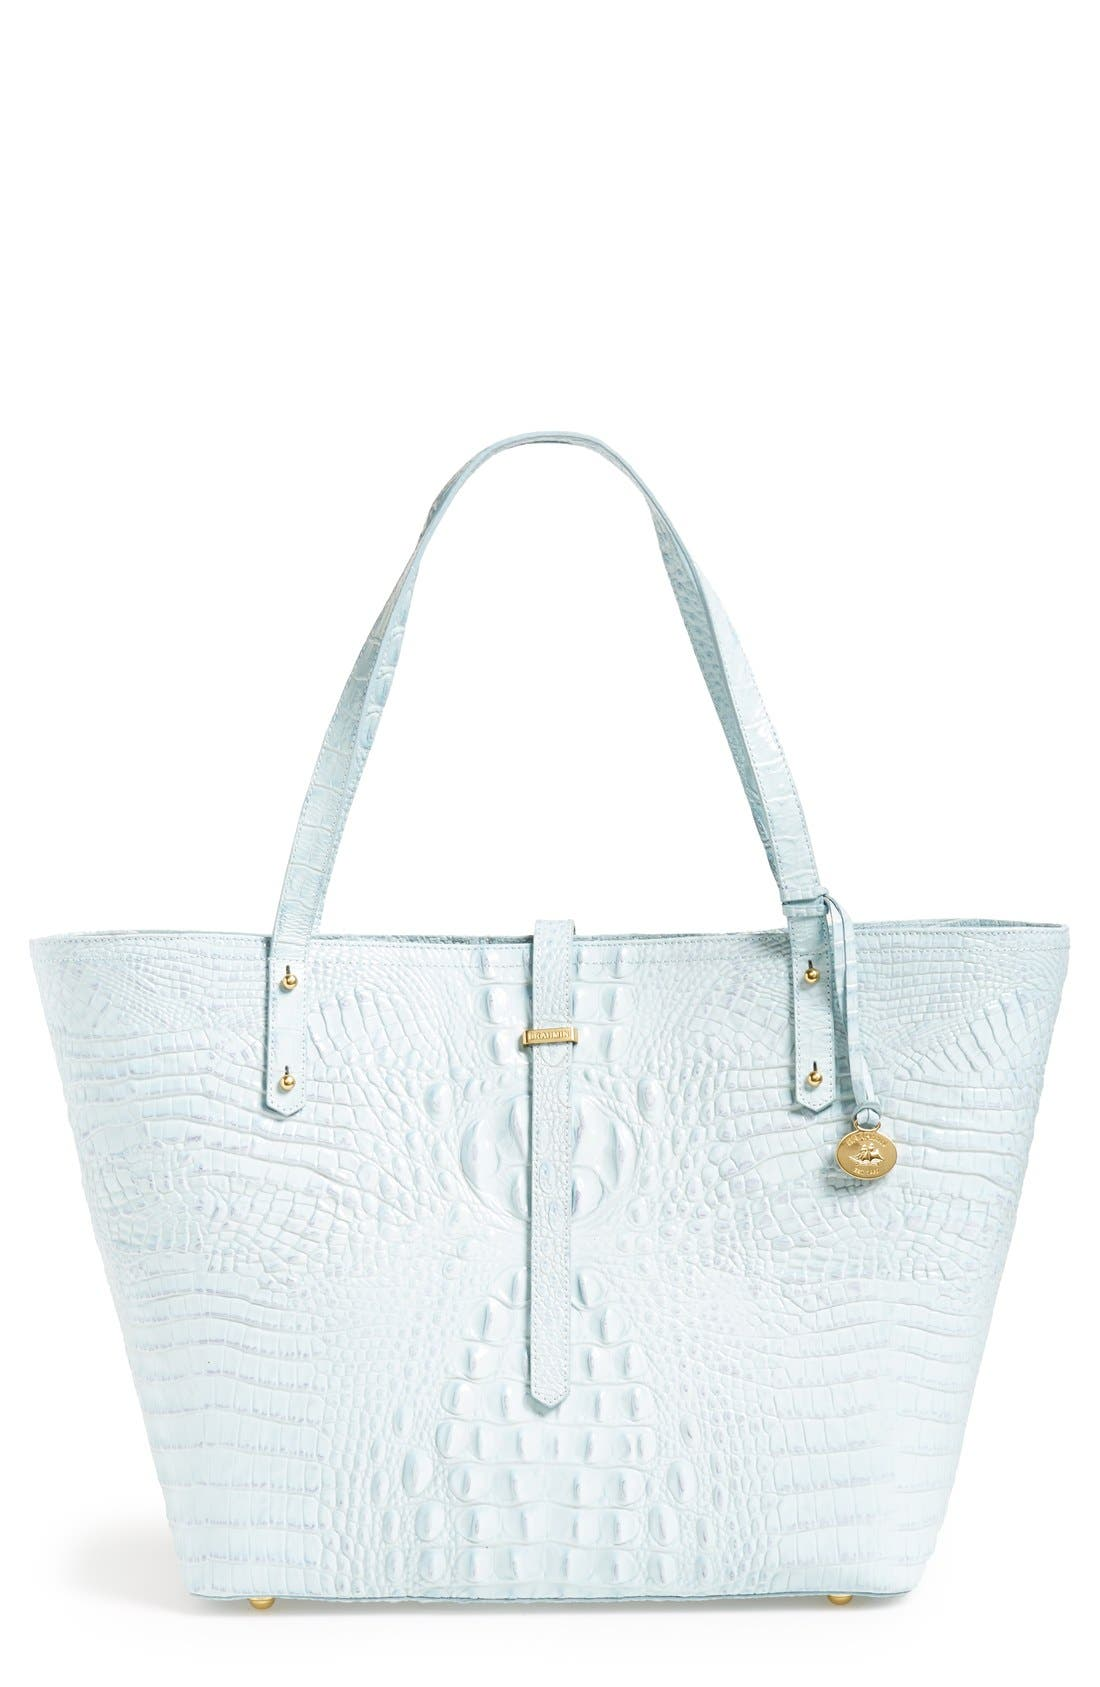 Alternate Image 1 Selected - Brahmin 'All Day' Tote